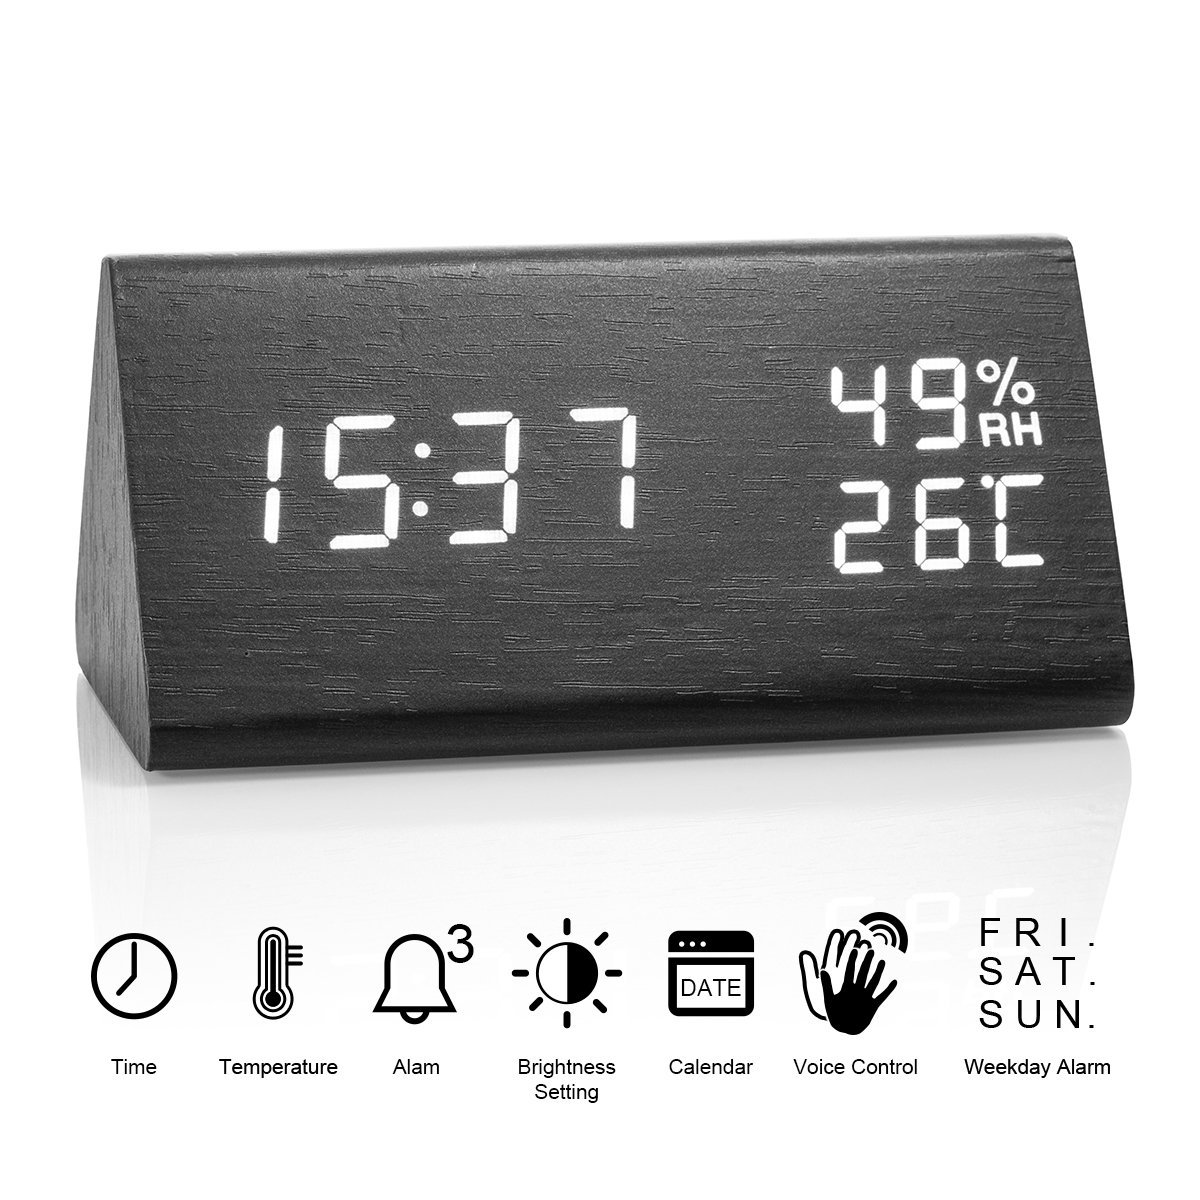 Idealin Alarm Clock Wooden made LED Display with 3 Level Brightness Dimmer Temperature Humidity USB Port for Charging Ideal for Home and Office